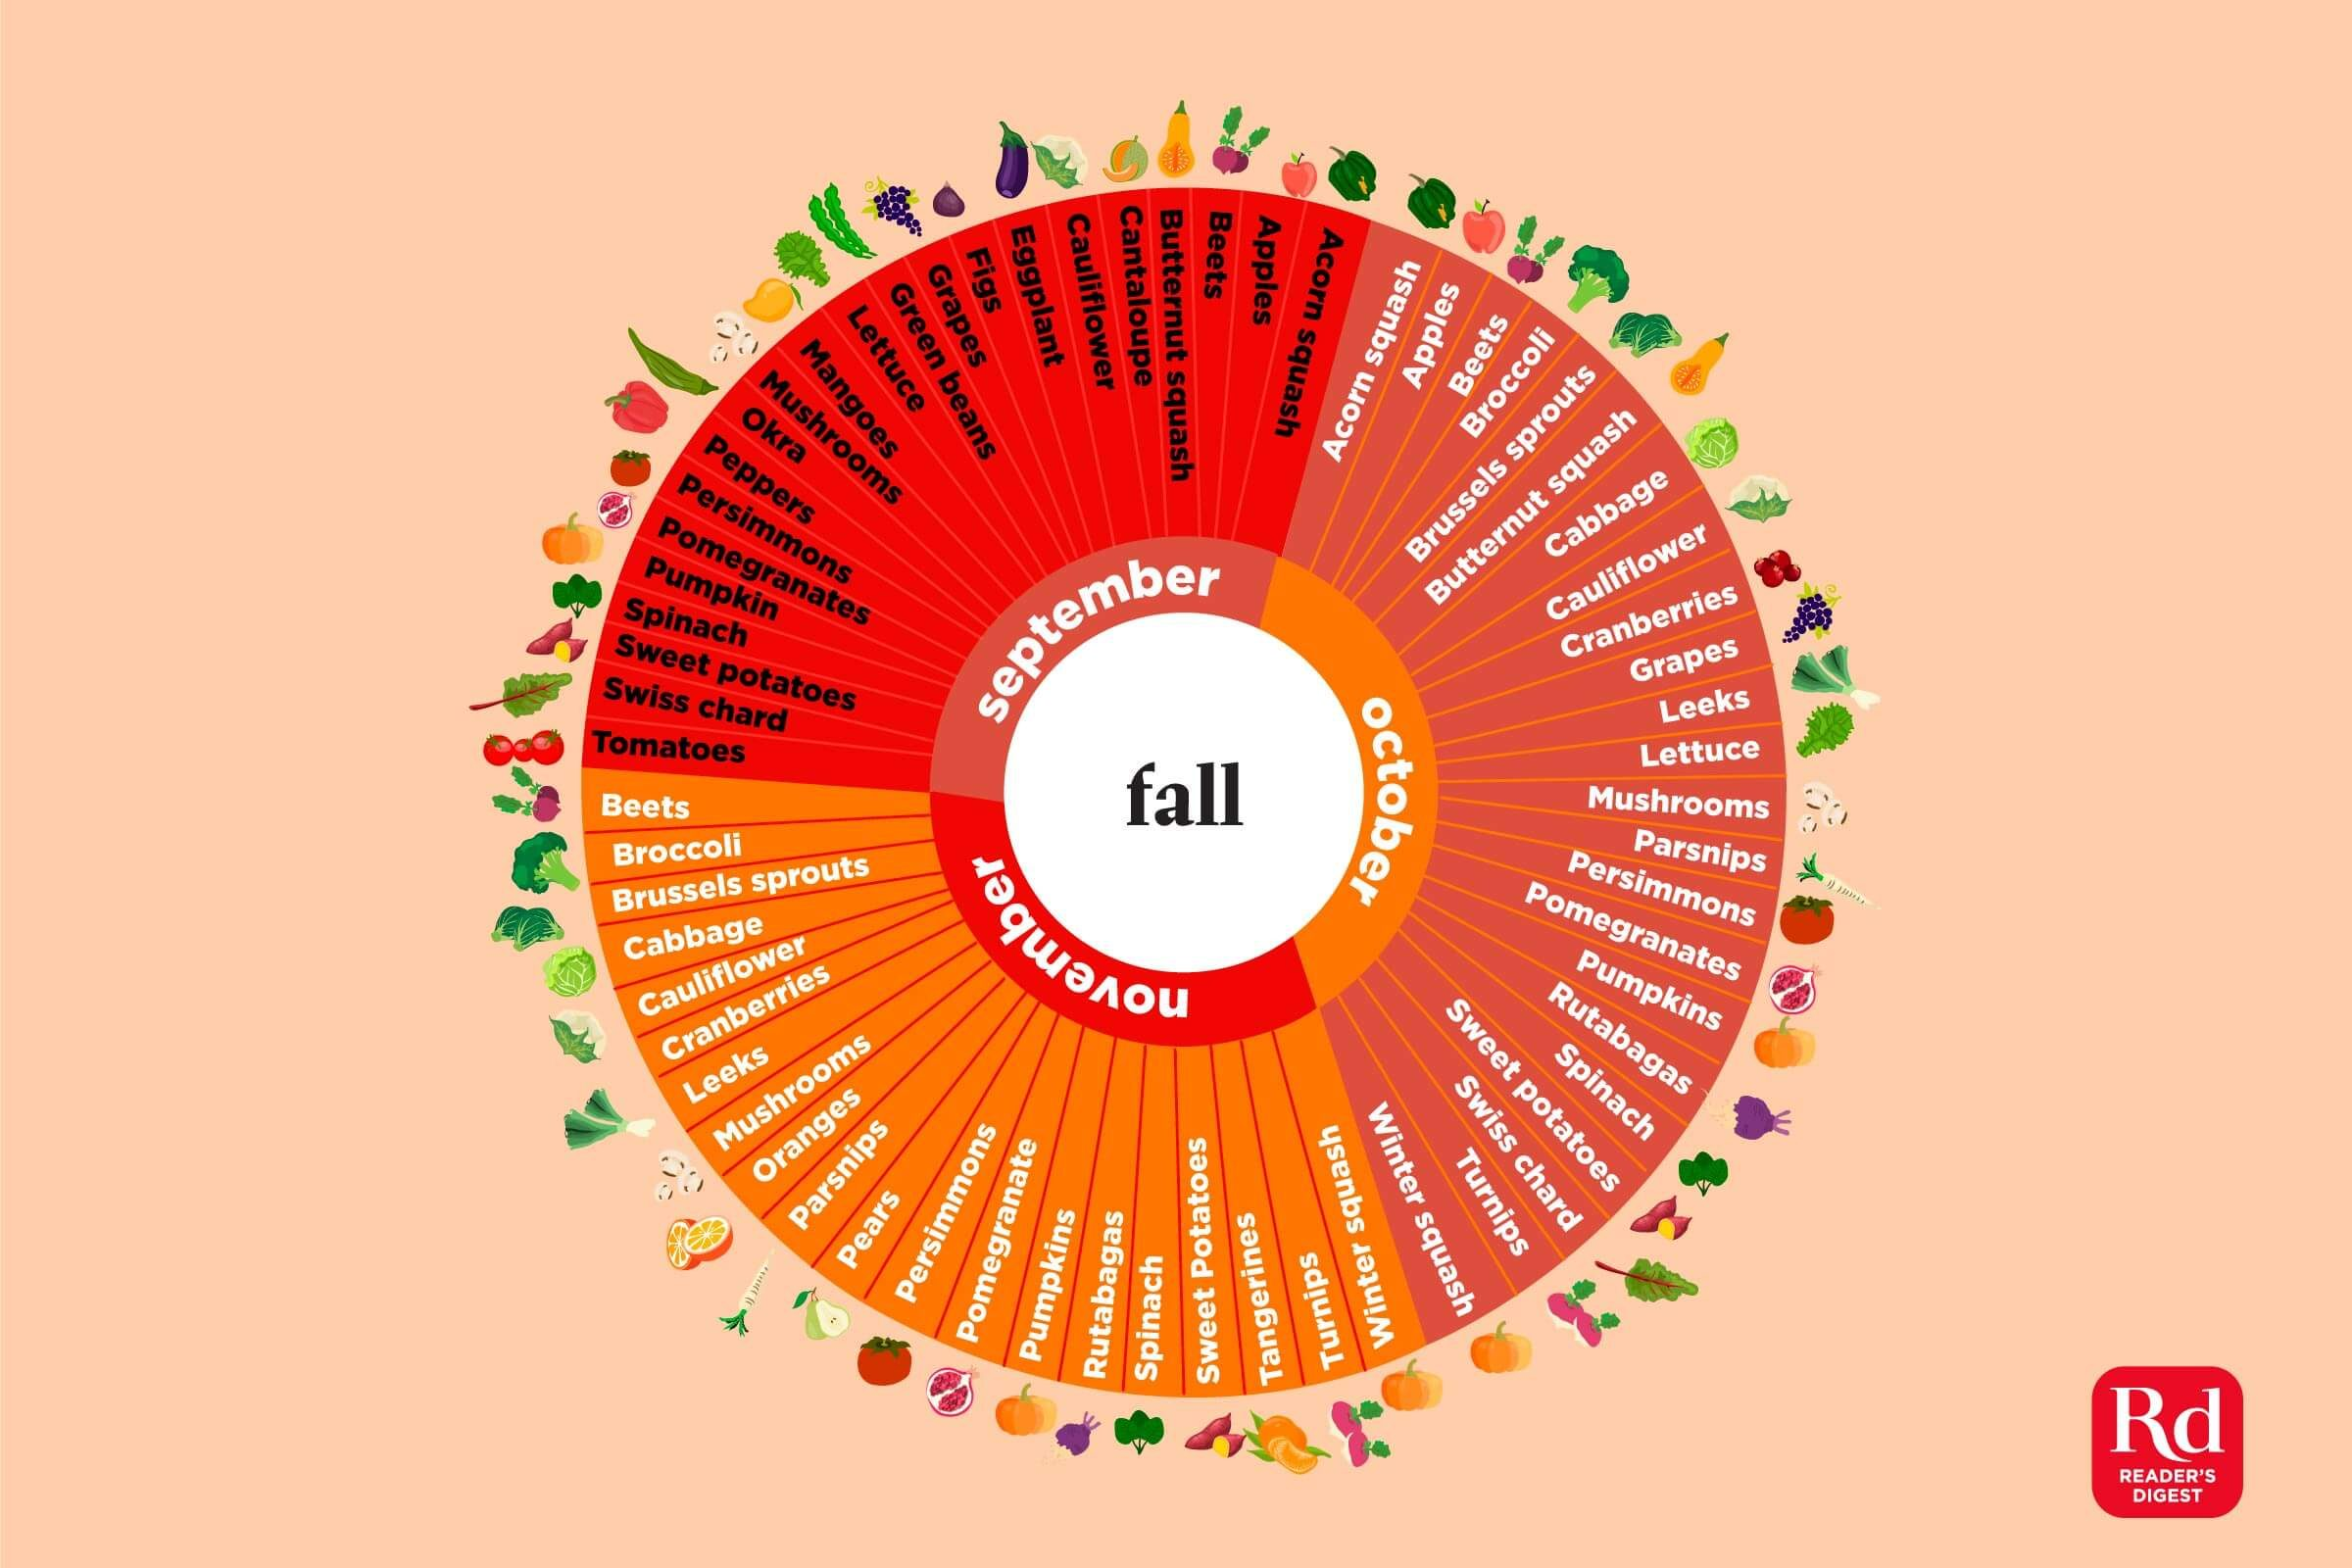 This-Infographic-Shows-the-Fruits-and-Vegetables-in-Season-Every-Month-of-the-Yea